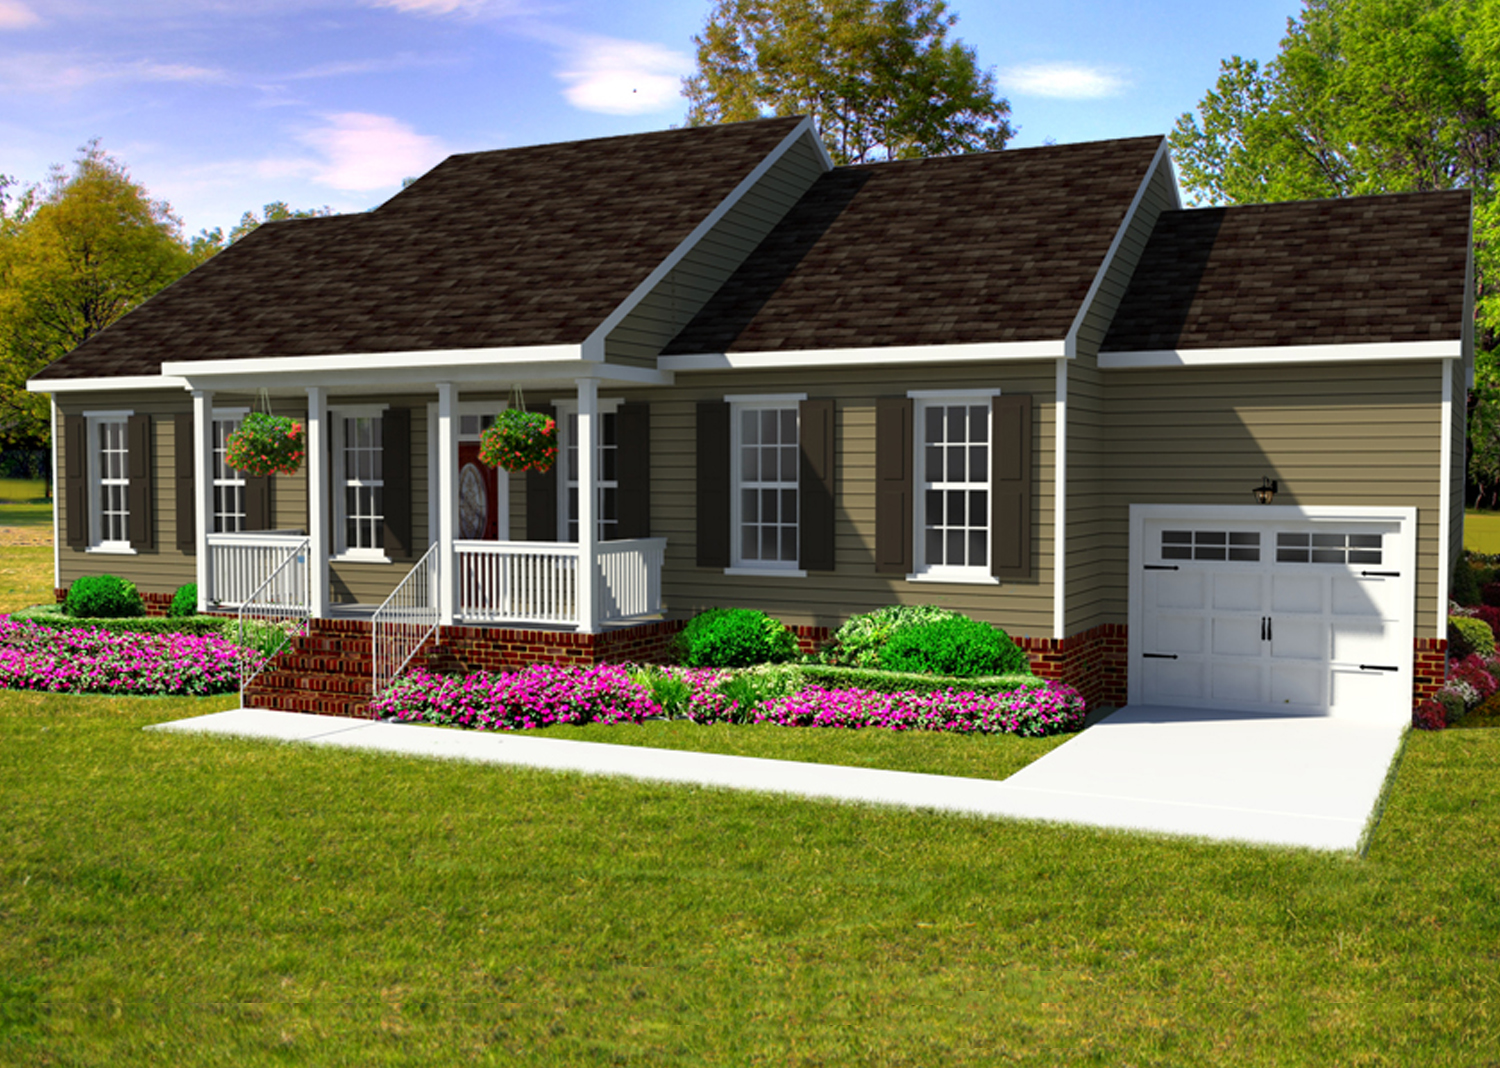 Windsor Affordable New Construction Home Suffolk VA AB Homes